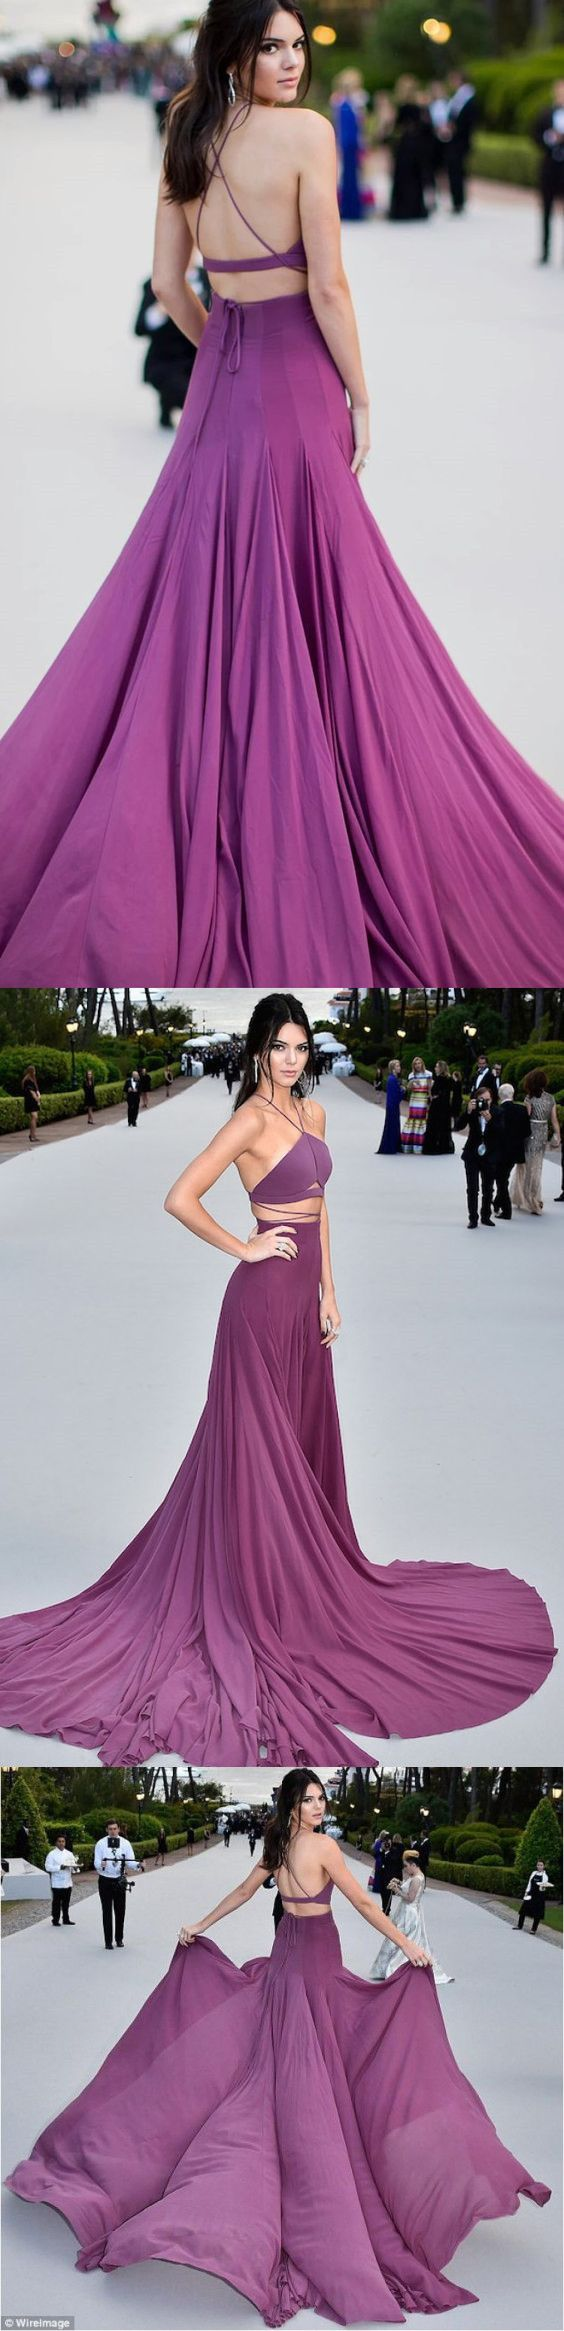 Lilac evening dresses two piece evening dresses two piece lilac